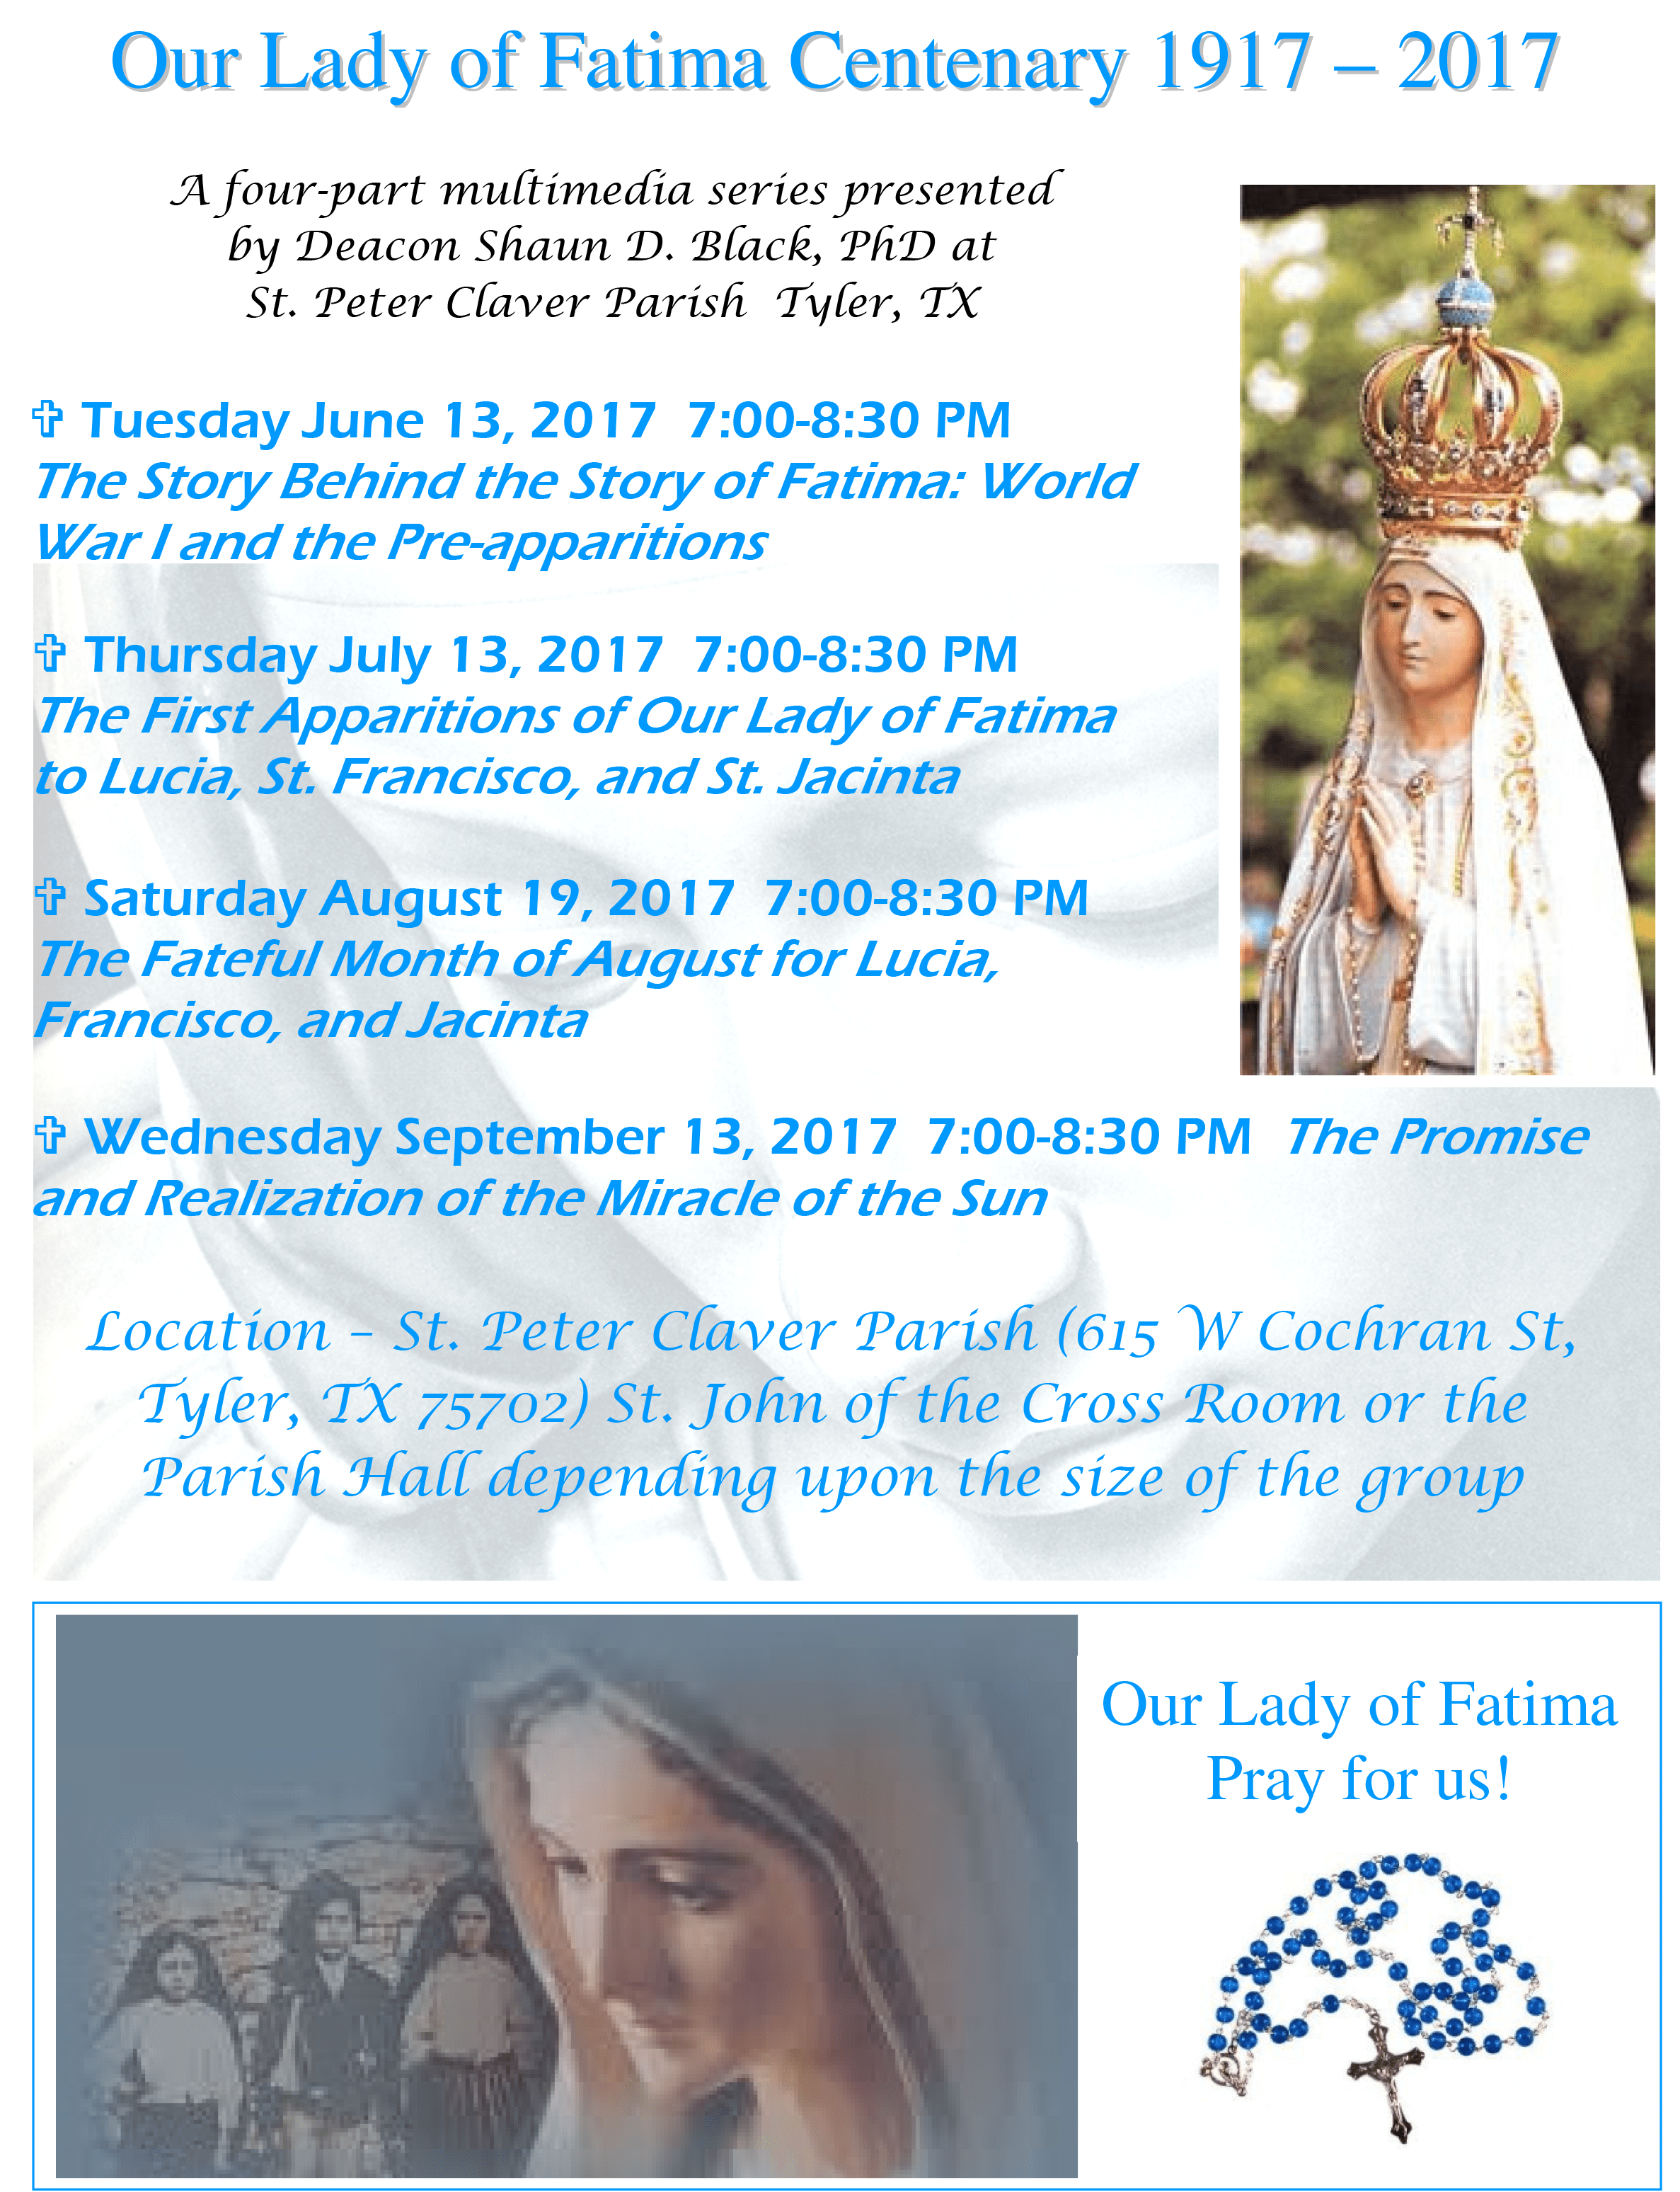 dcn shaun our lady of fatima series 2017 flyer